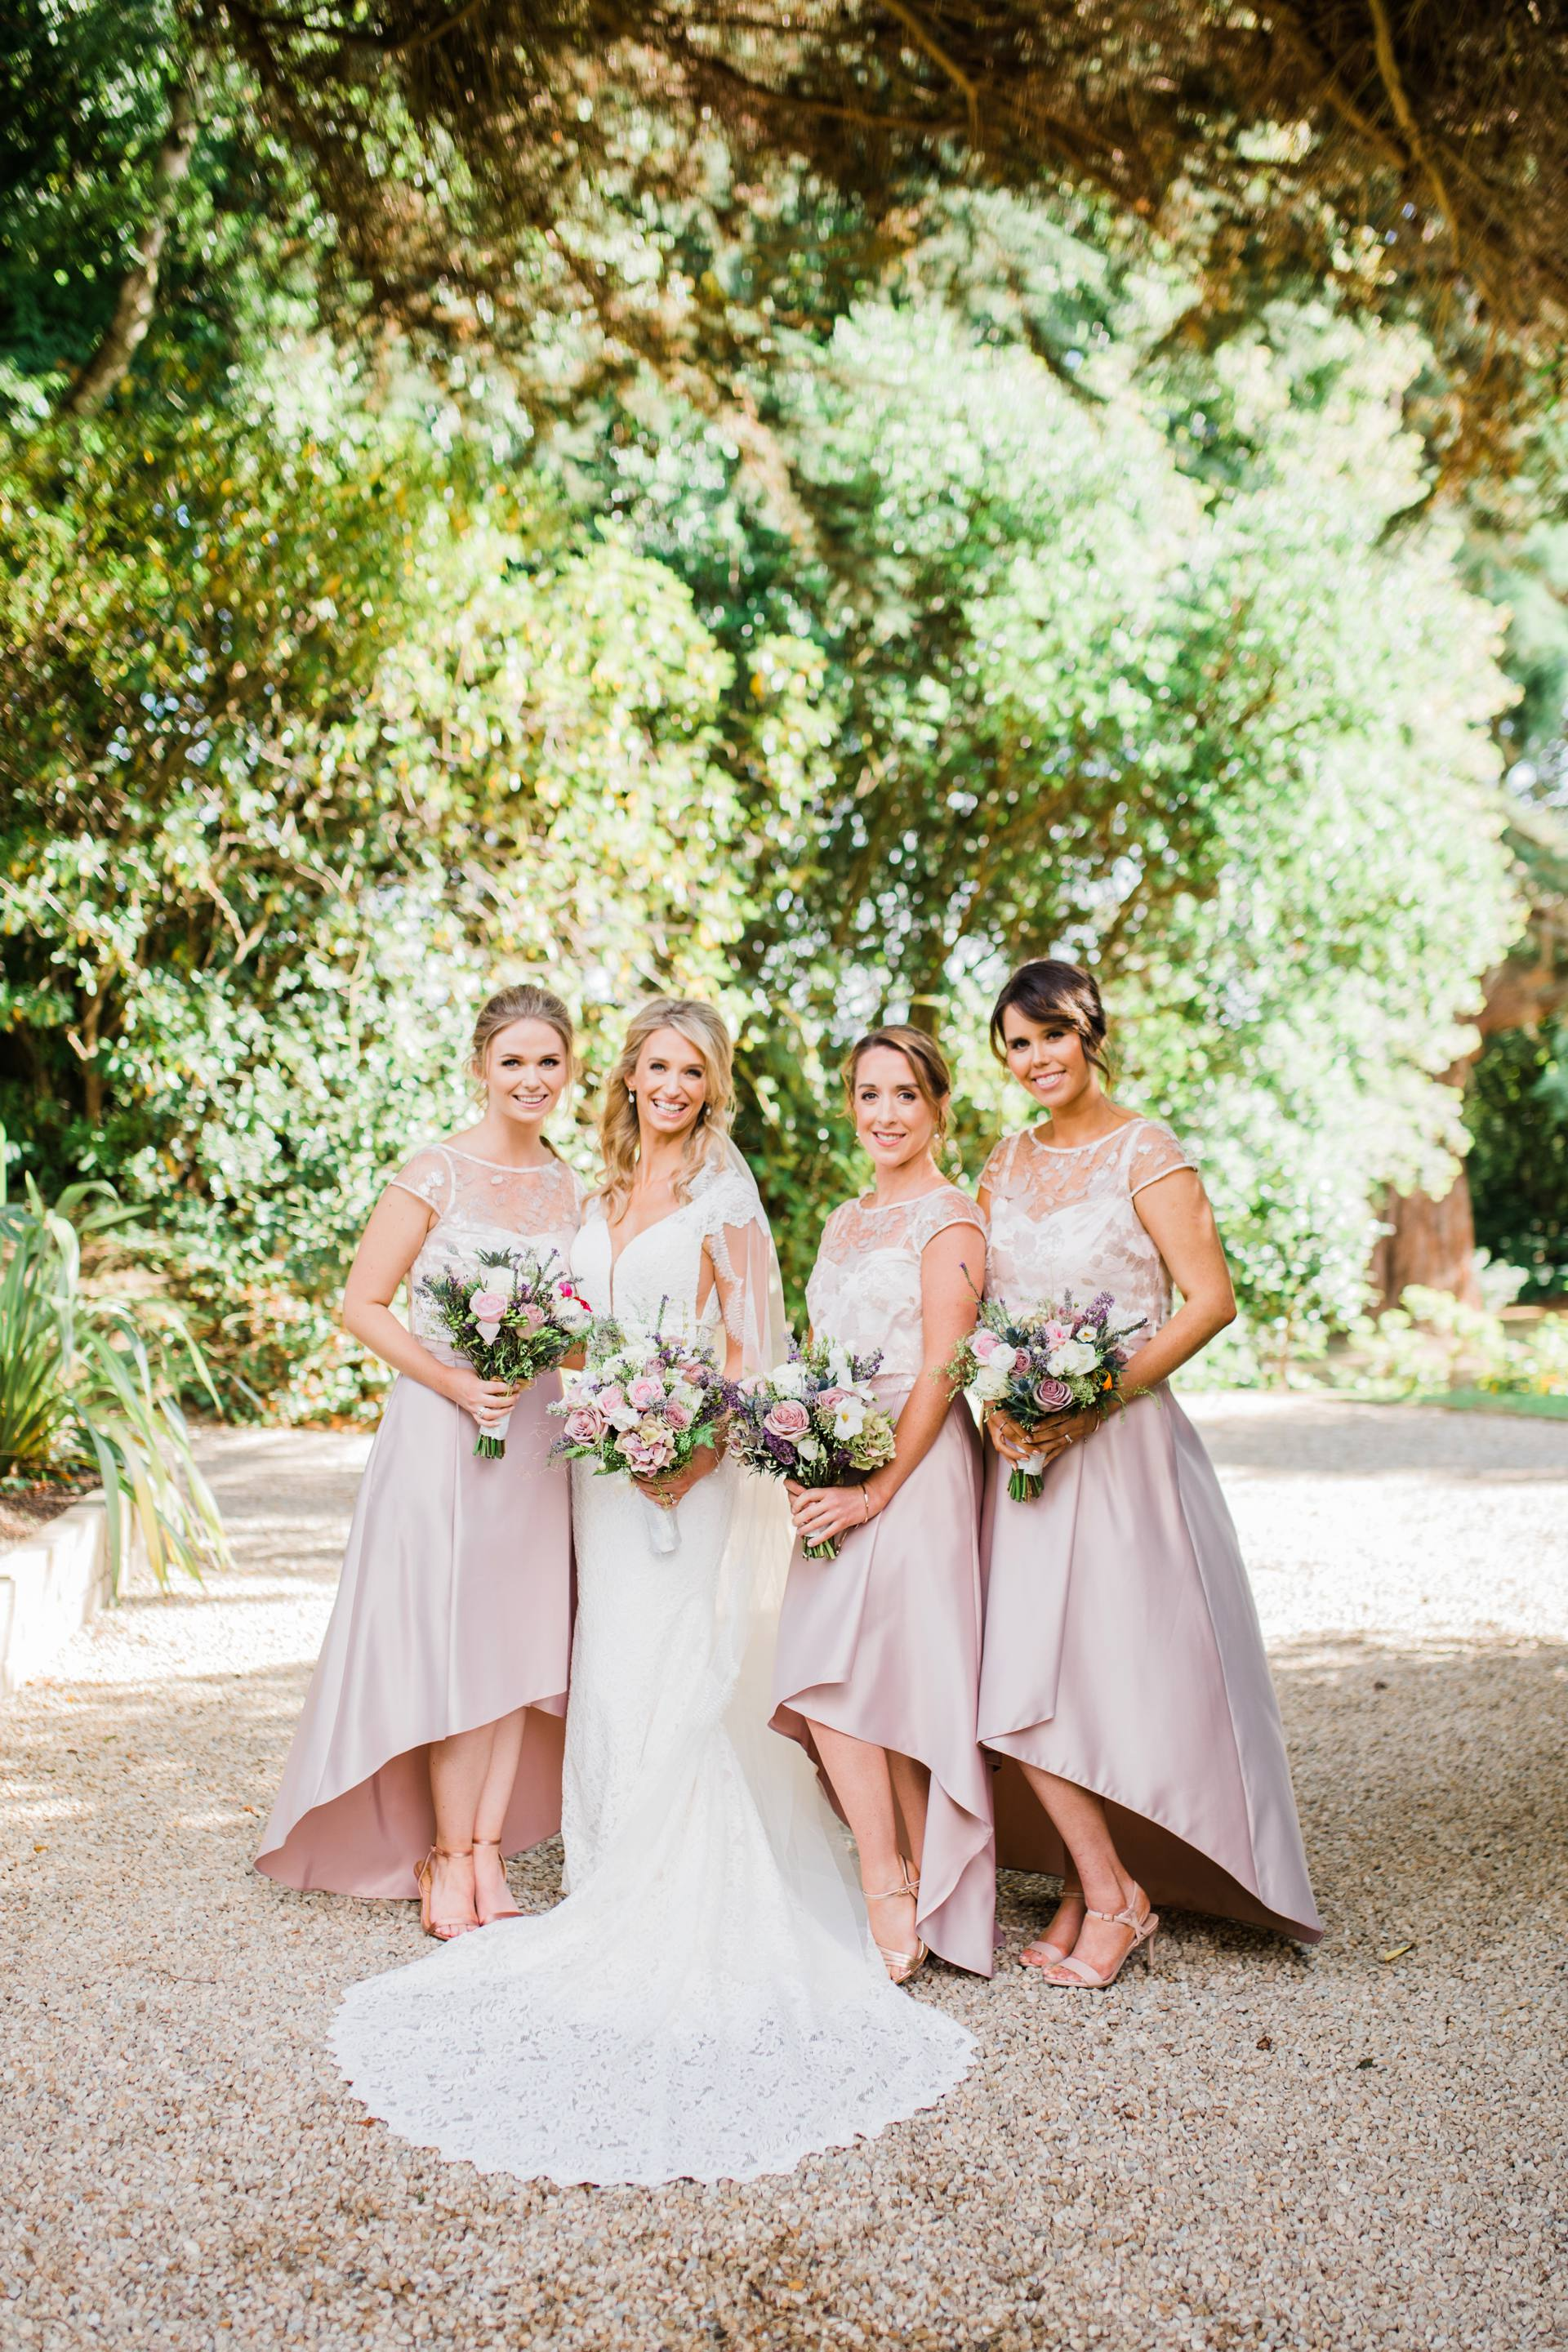 Bride with bridesmaids standing under a tree